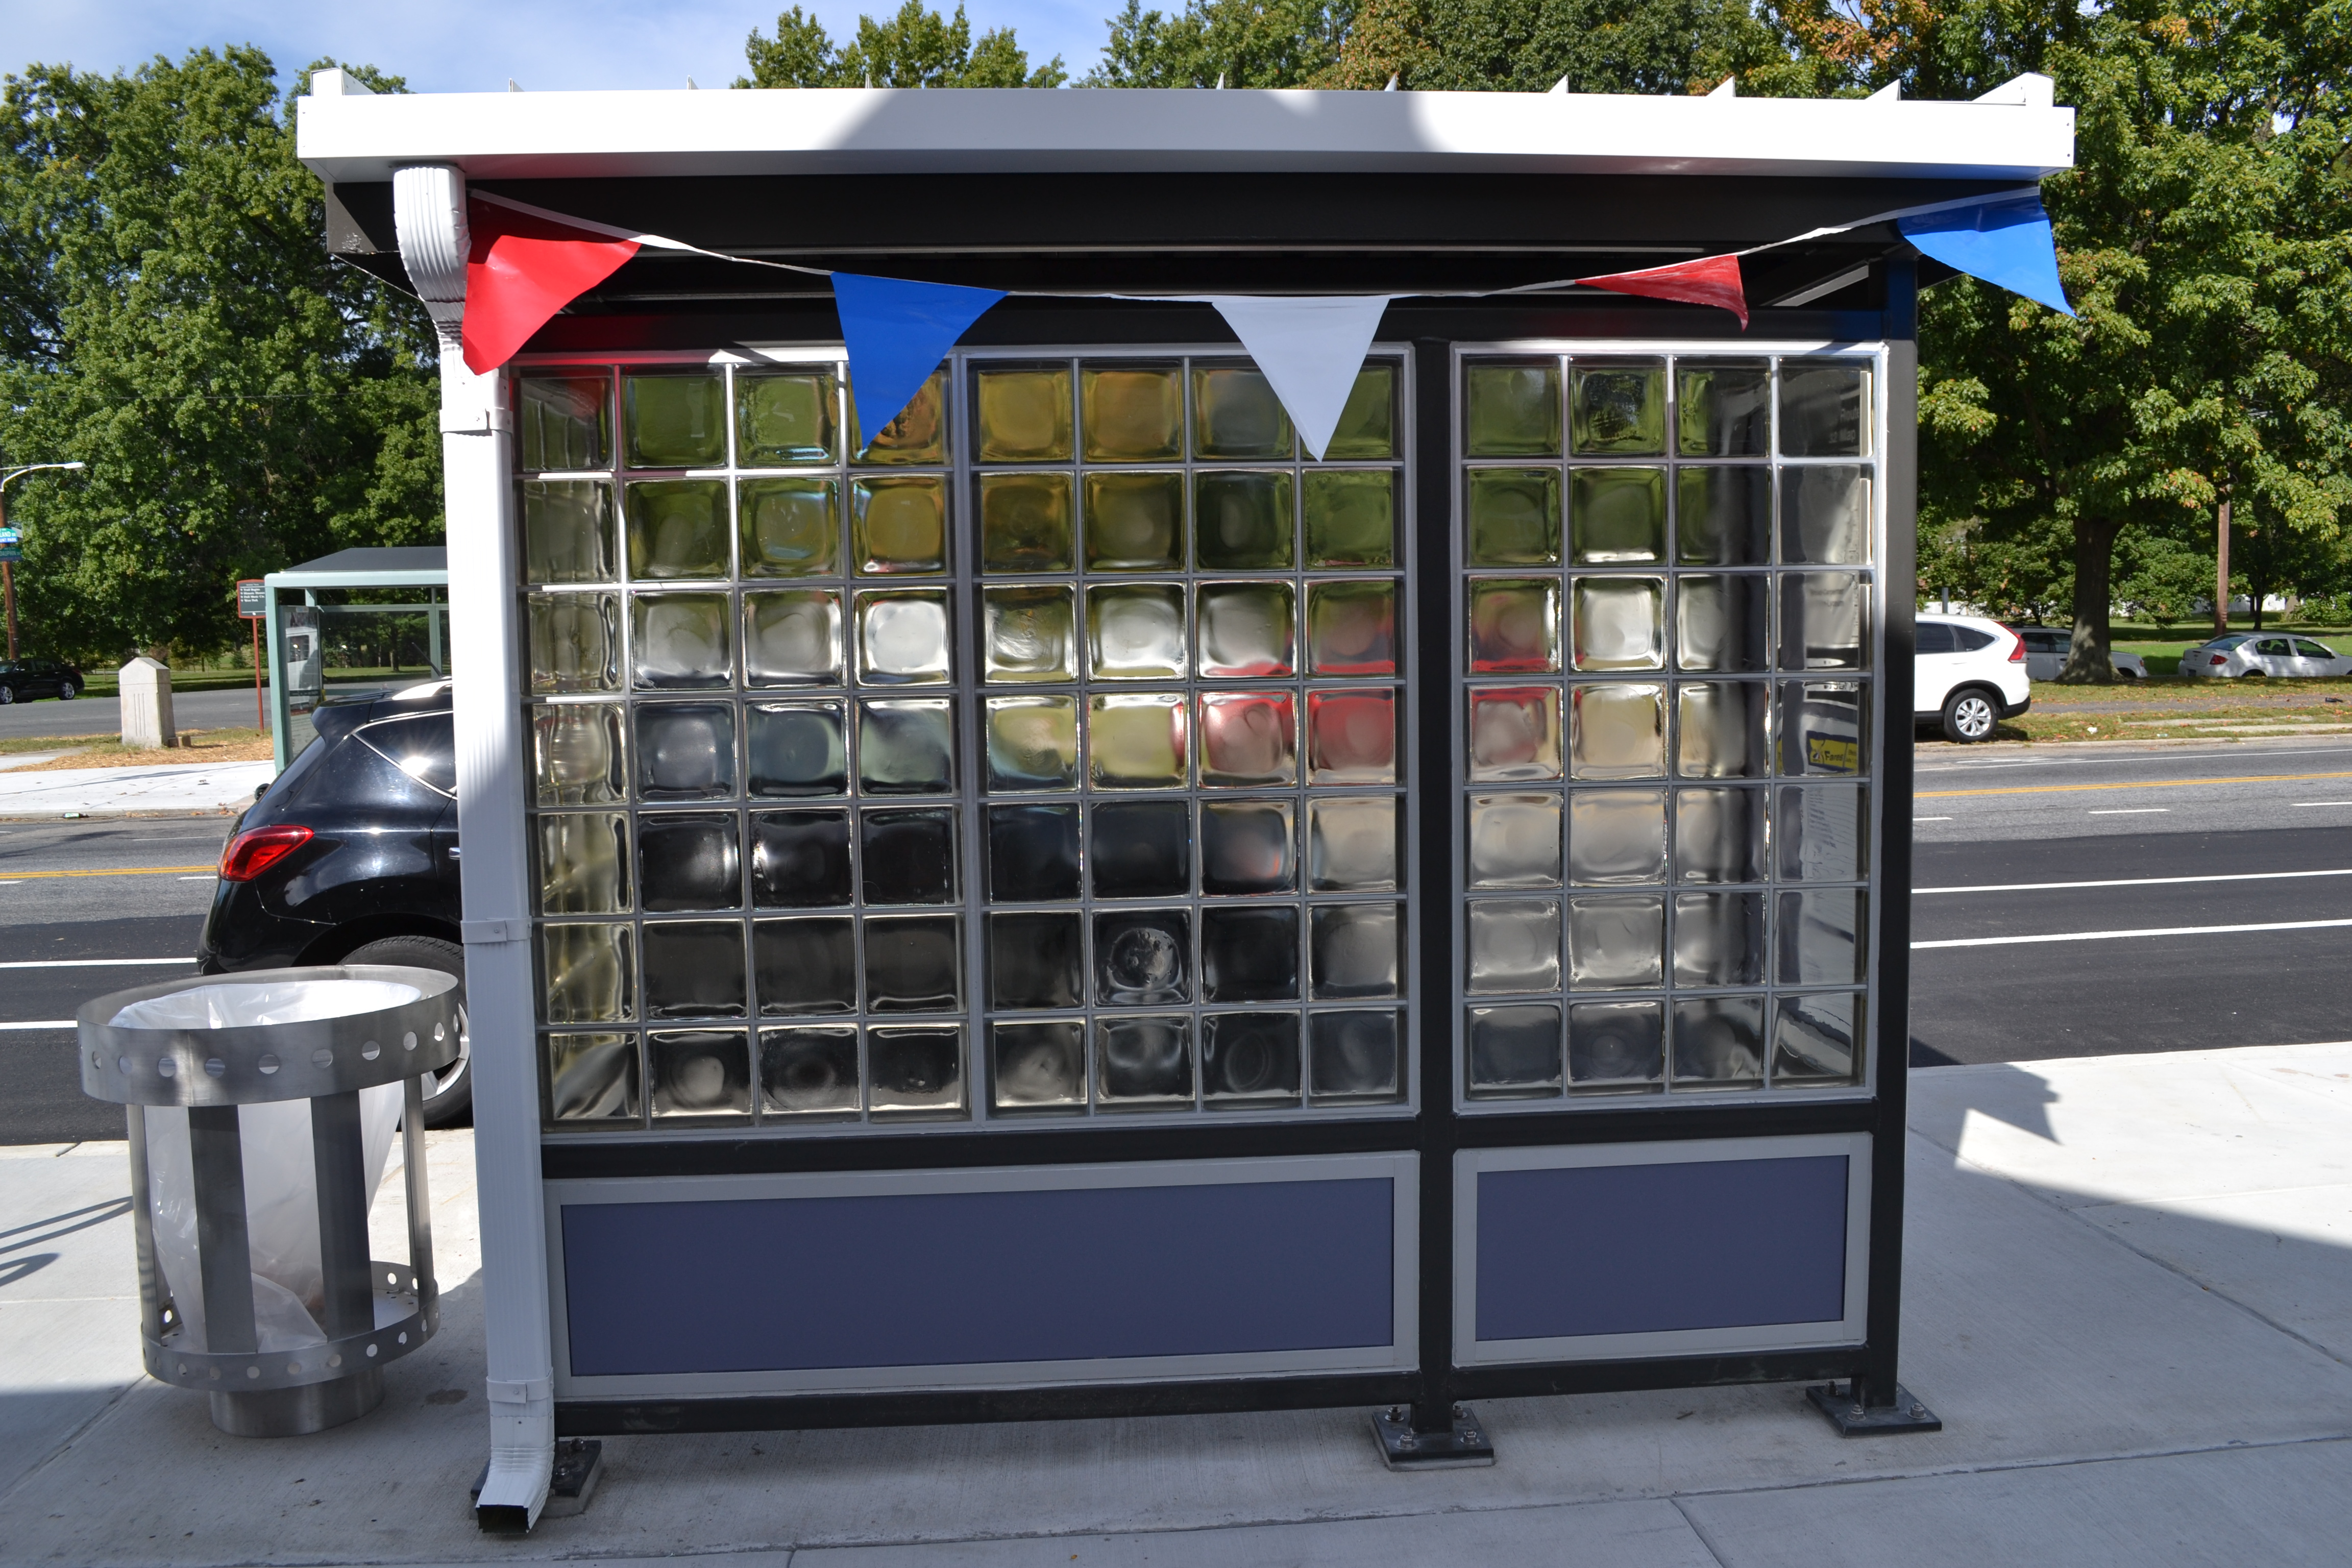 The project included installing new bus shelters around the perimeter of the bus loop